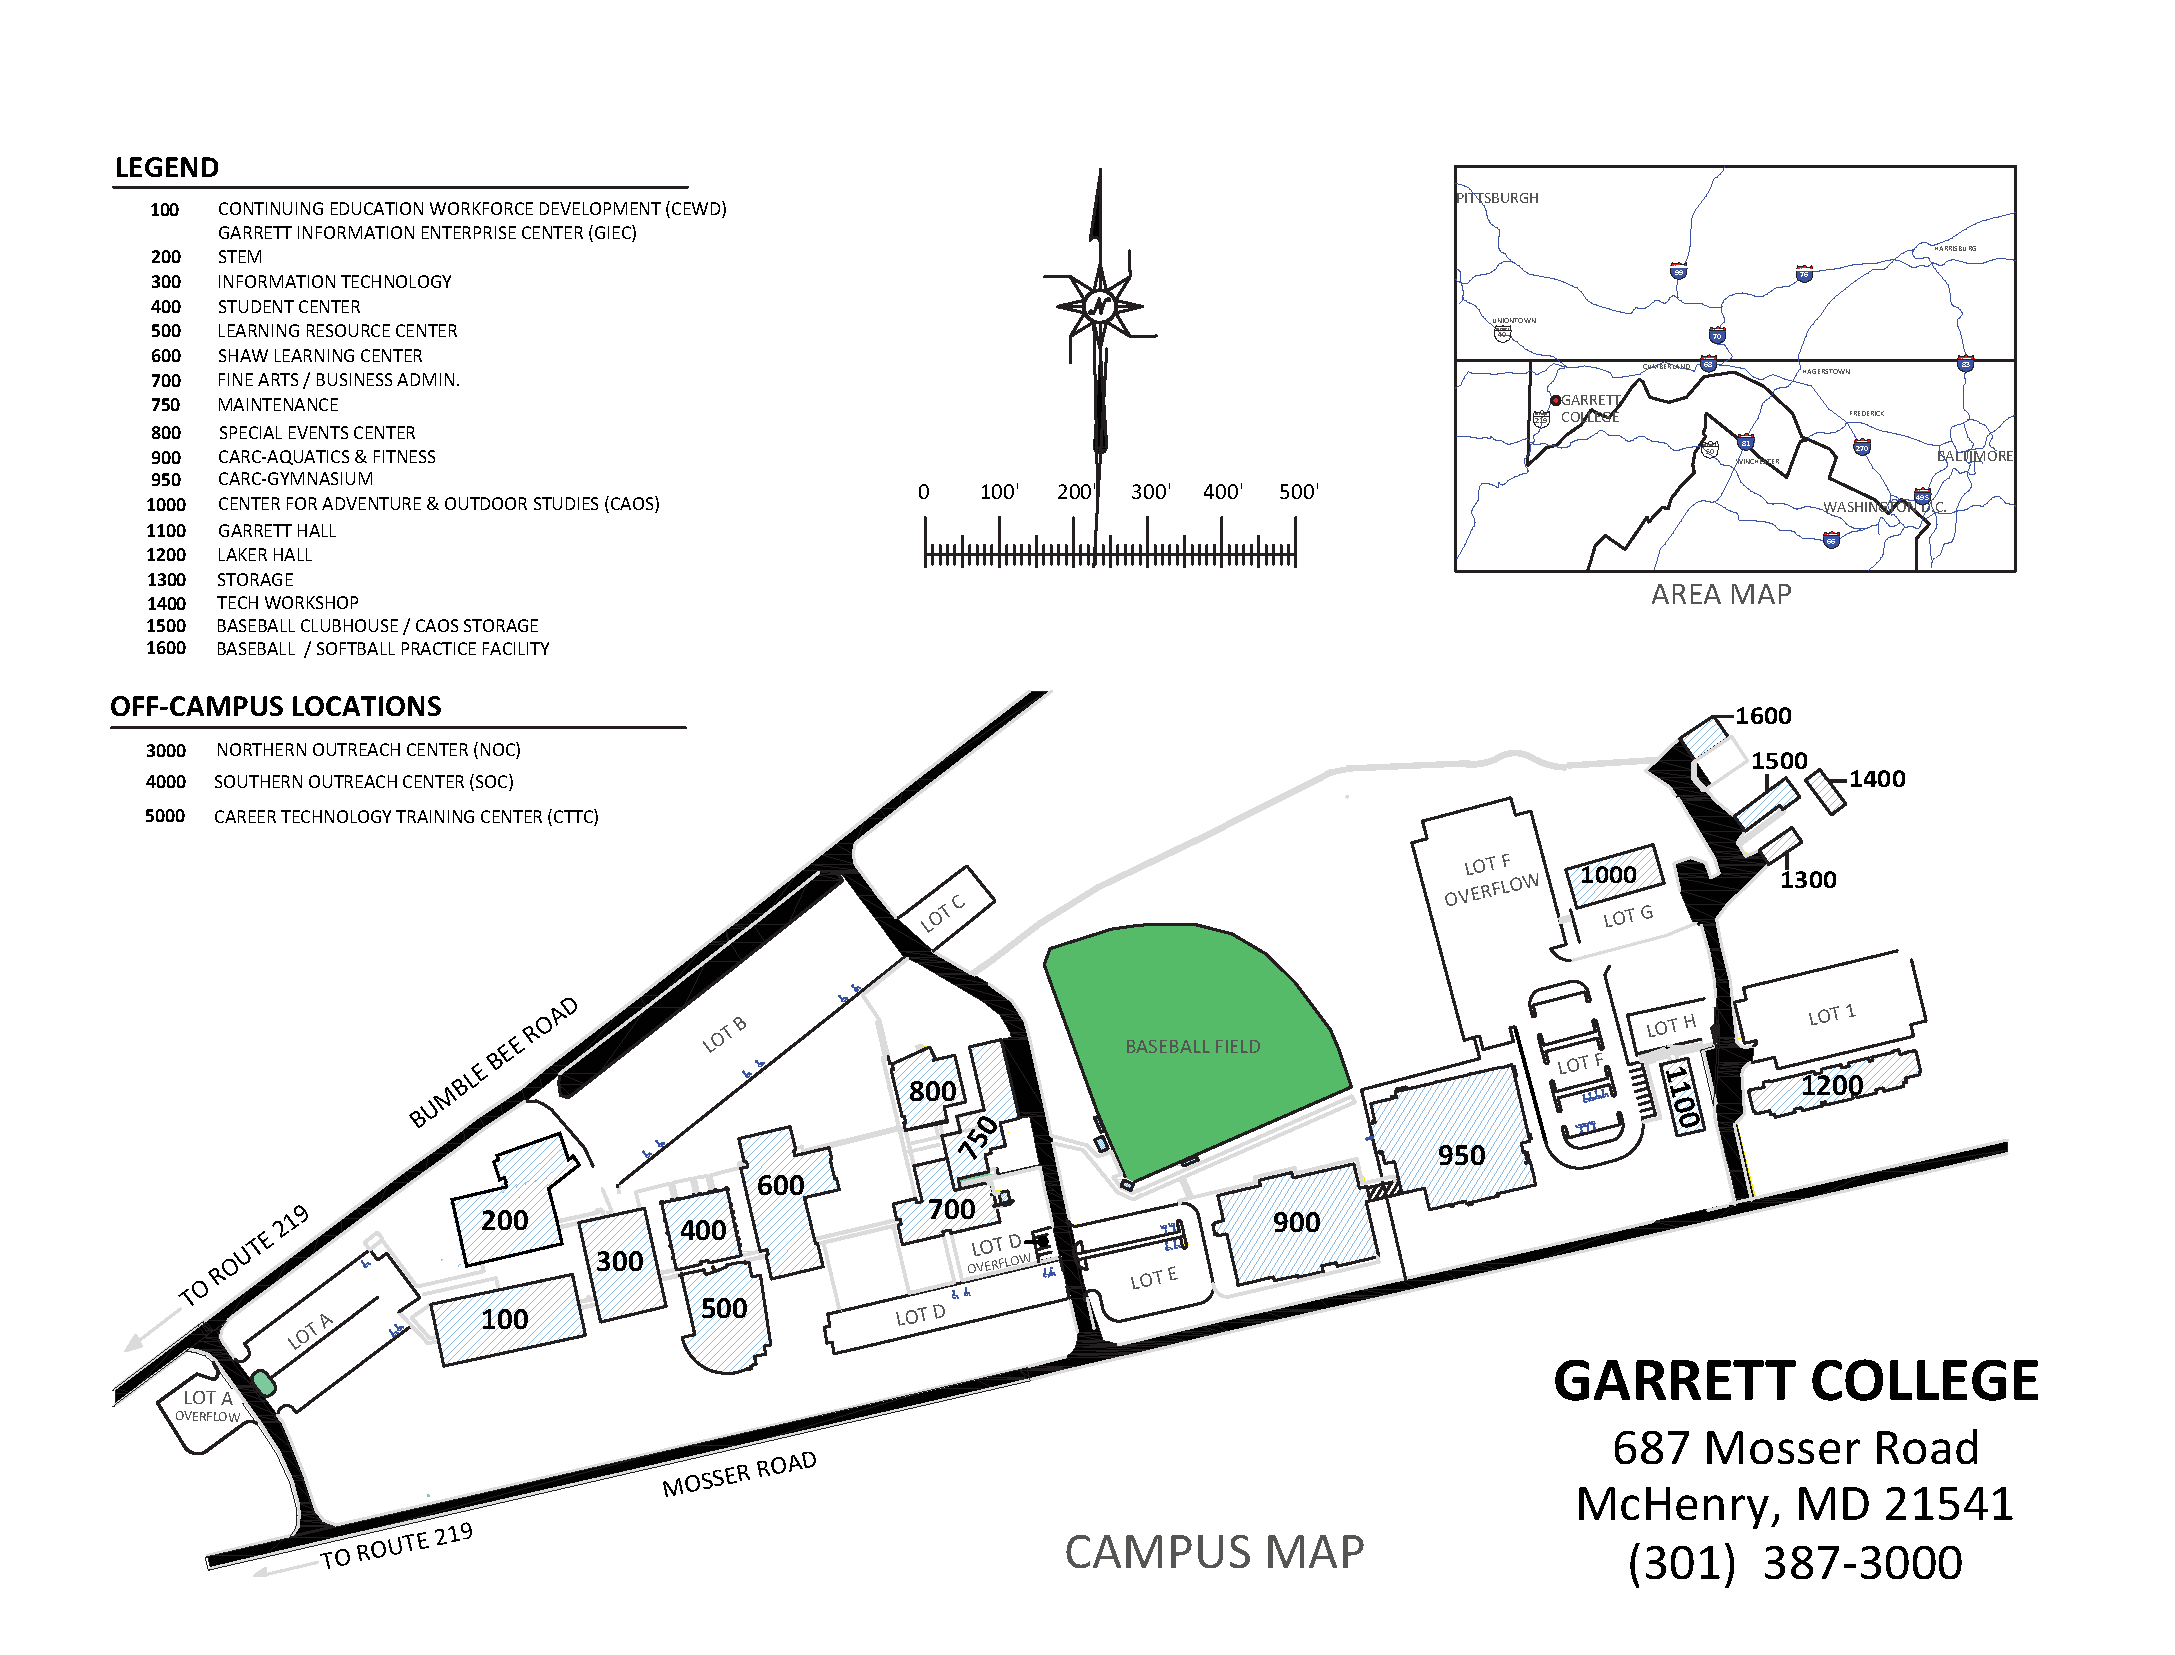 Campus Map - Garrett College on map of university of pittsburgh pa, map of iu northwest campus, map of iu health south campus, map of indiana to florida, map of southeast indiana, map of indians living in indiana, map of missouri and indiana, map of southern indiana, map of iu housing, map of iup edu campus, map of iup zink hall, map of kentucky and indiana, map of indiana and michigan, map of south carolina university housing, map of valparaiso indiana, map of northwest university buildings, map of northwest indiana, map of california university pa, map of indiana covered bridges, map of colleges in pennsylvania,